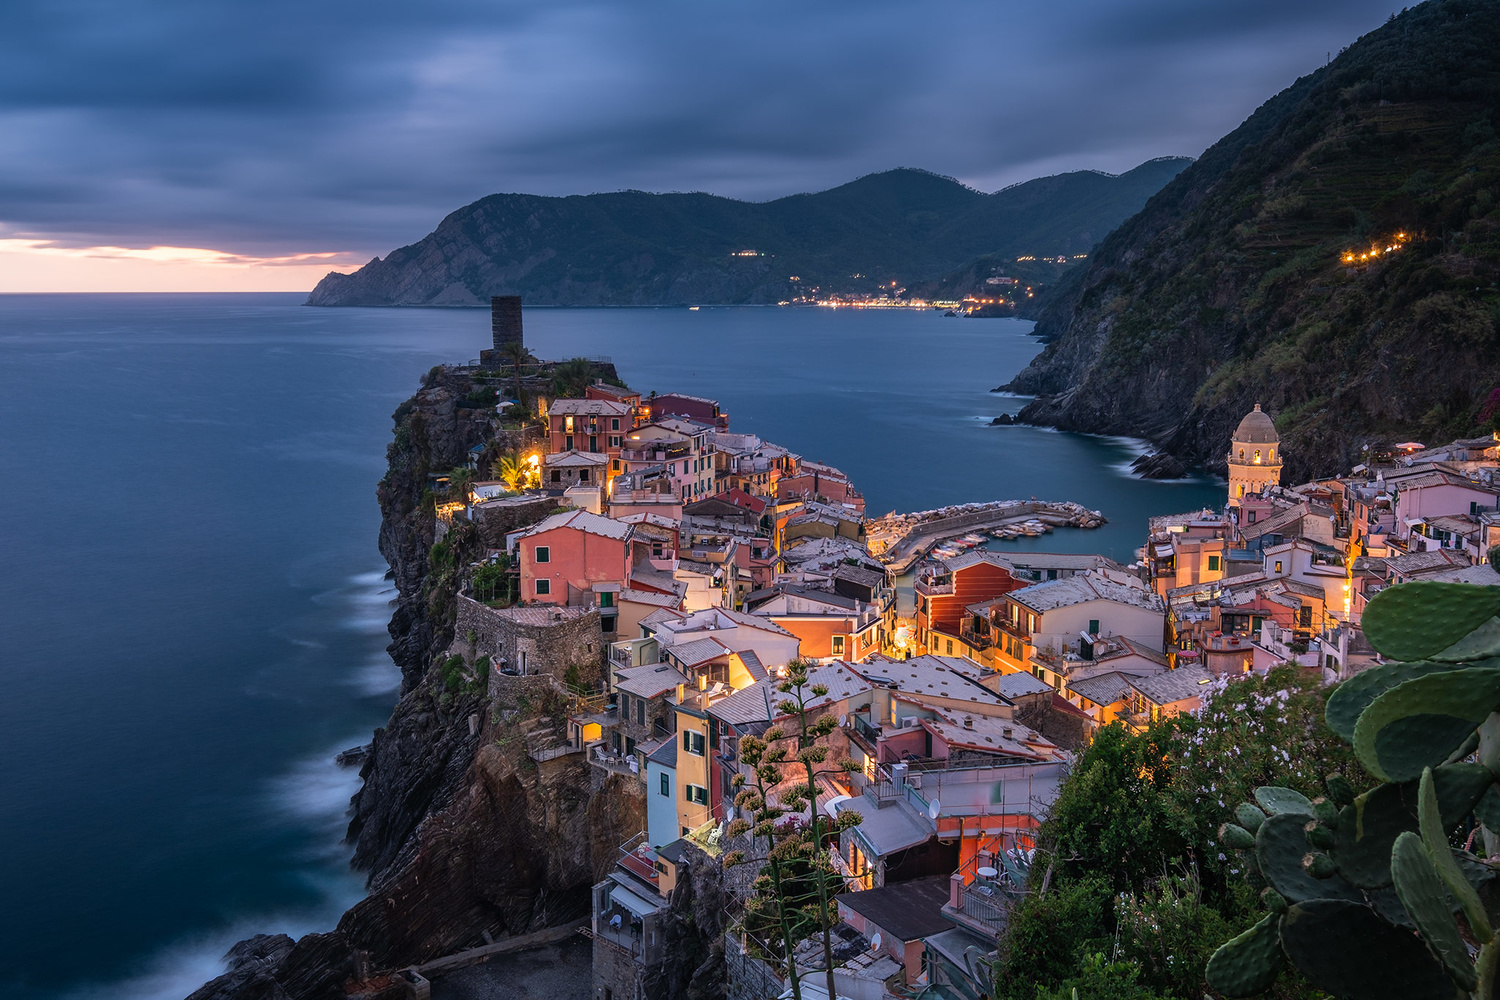 Another night in Vernazza by Anton Galitch